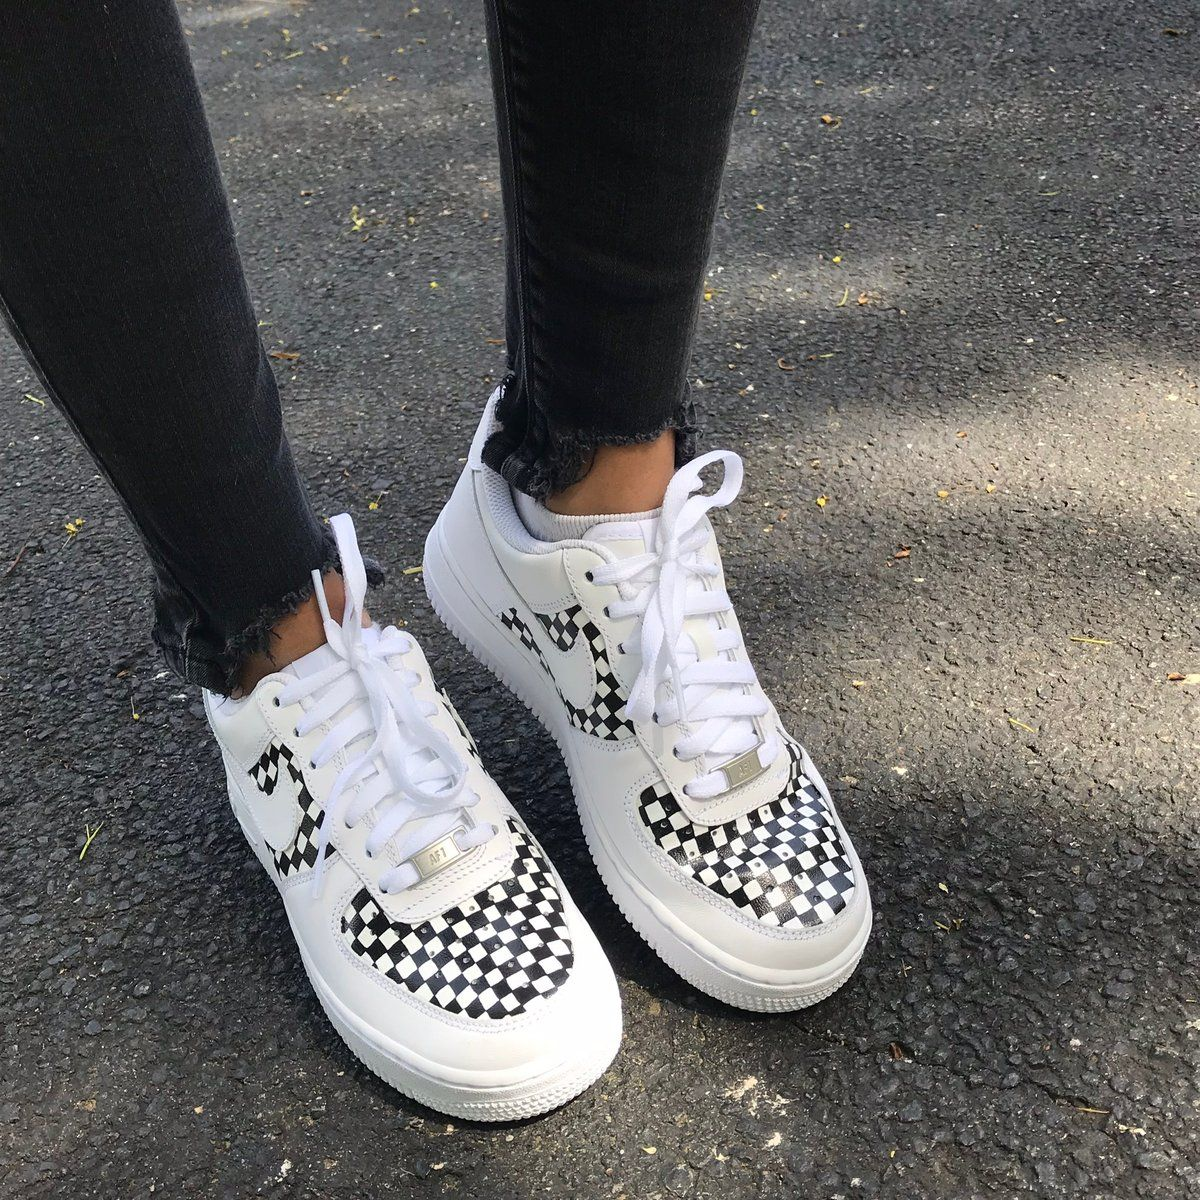 2e01ae75c385 Hand-painted black and white checker pattern on middle and toe of Nike Air  Force 1 s. Each pair is made-to-order just for you!